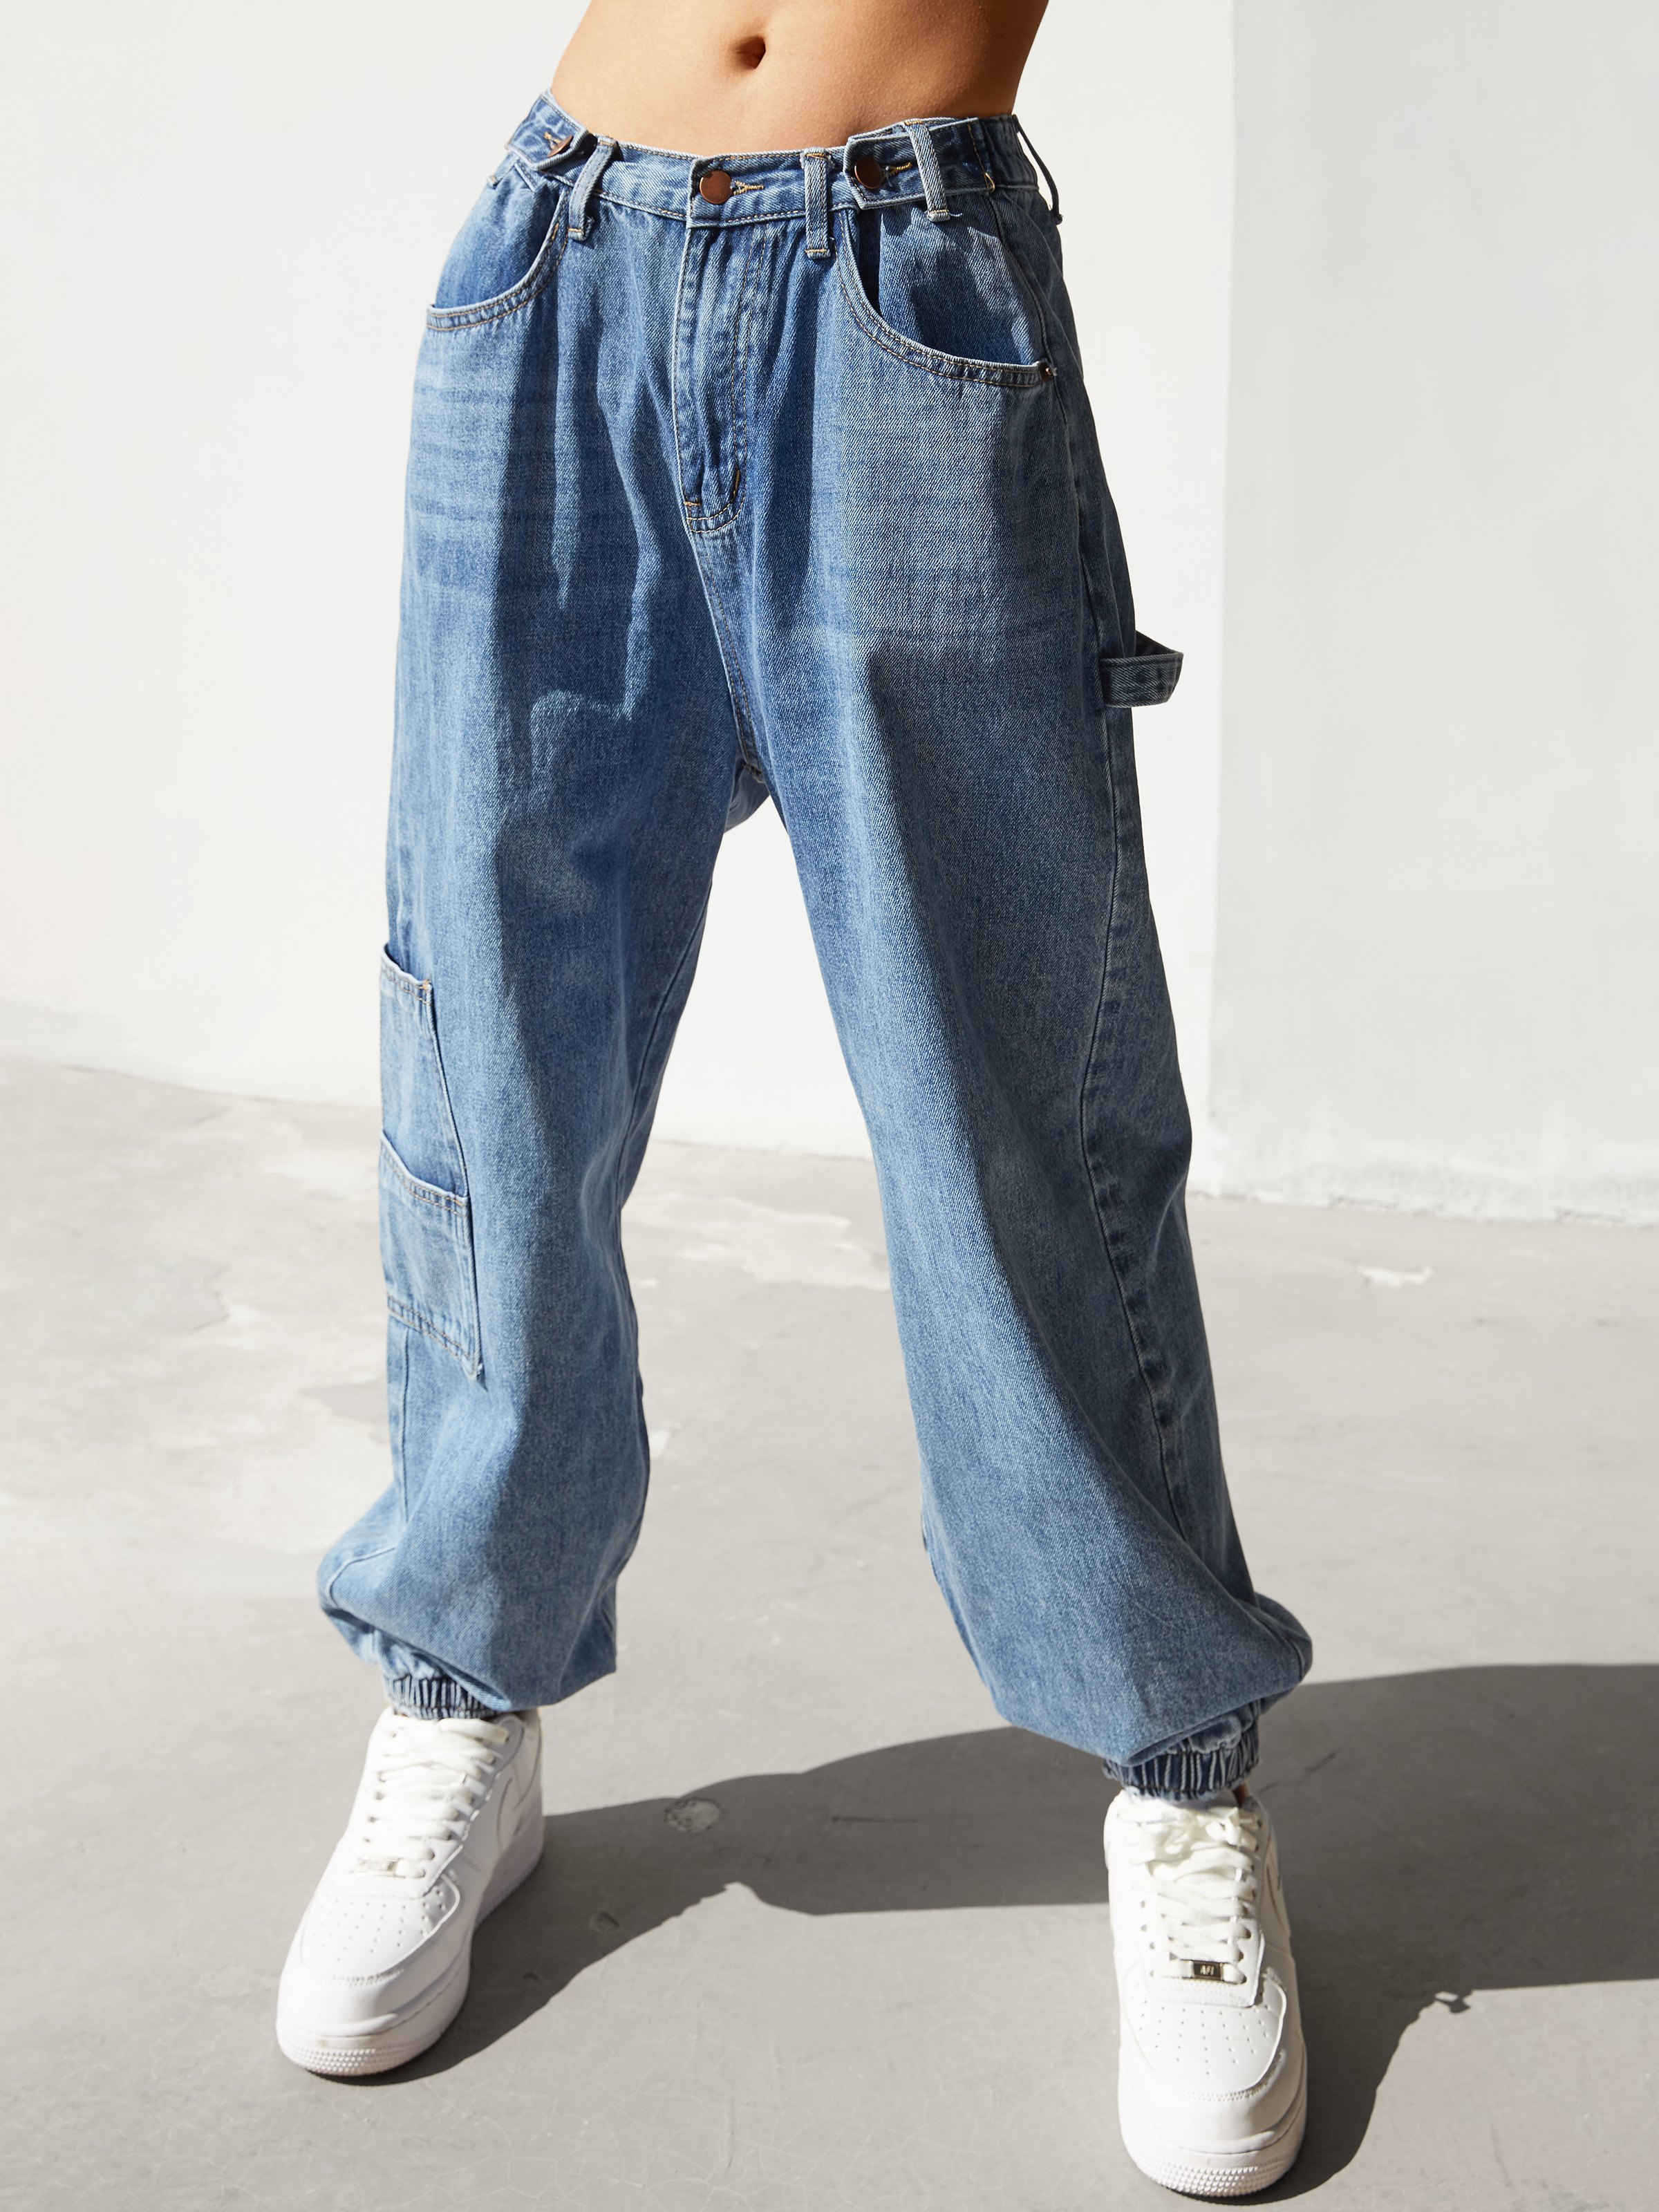 High Waist Tapered Cargo Jeans - Blue S